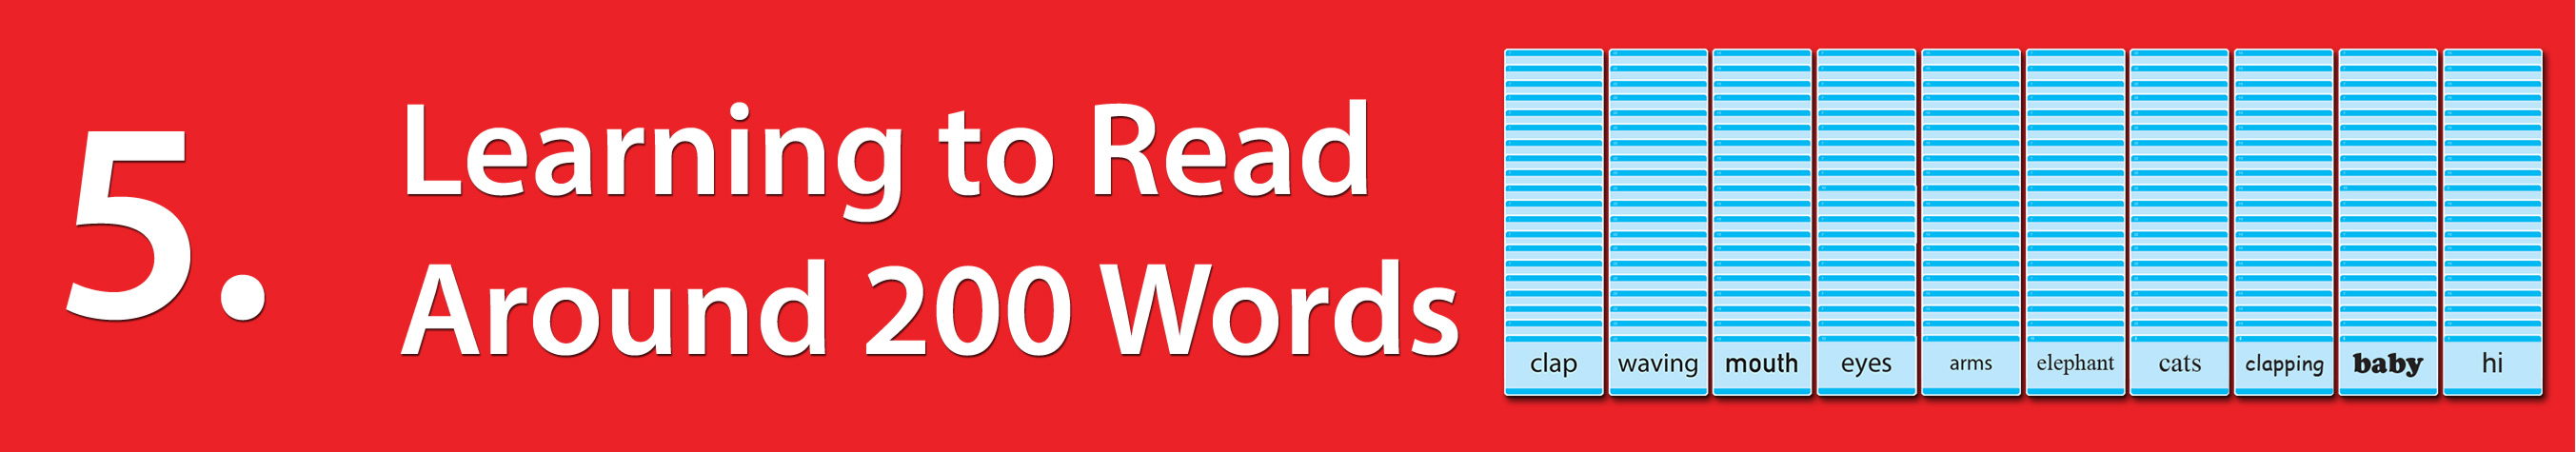 Milestone 5: Learning to Read around 200 Words